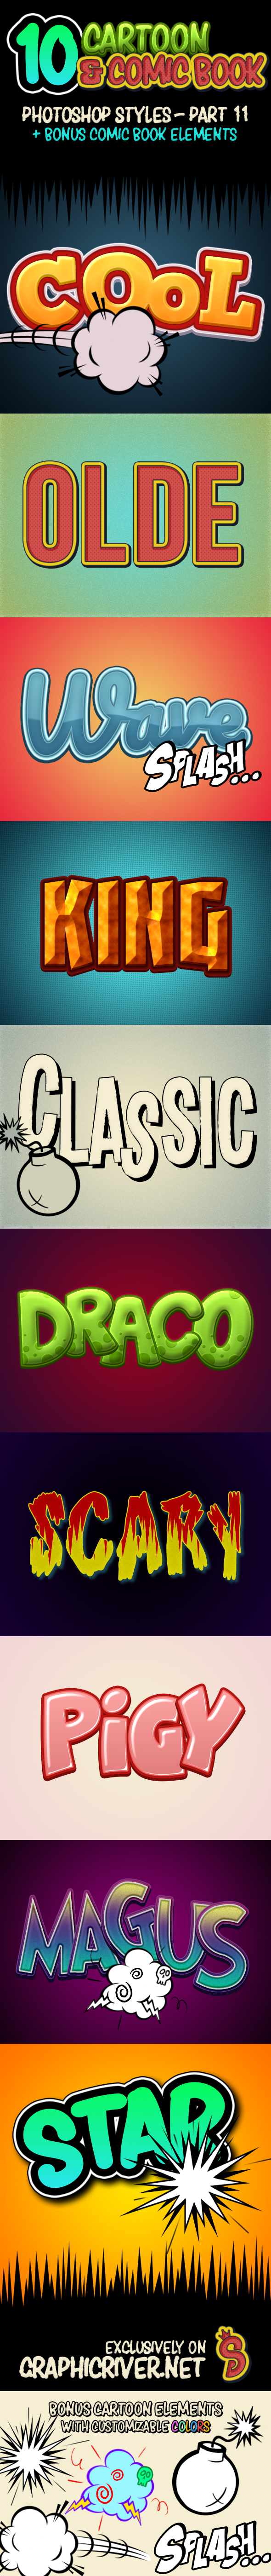 Cartoon and Comic Book Styles - Part 11 - Text Effects Styles